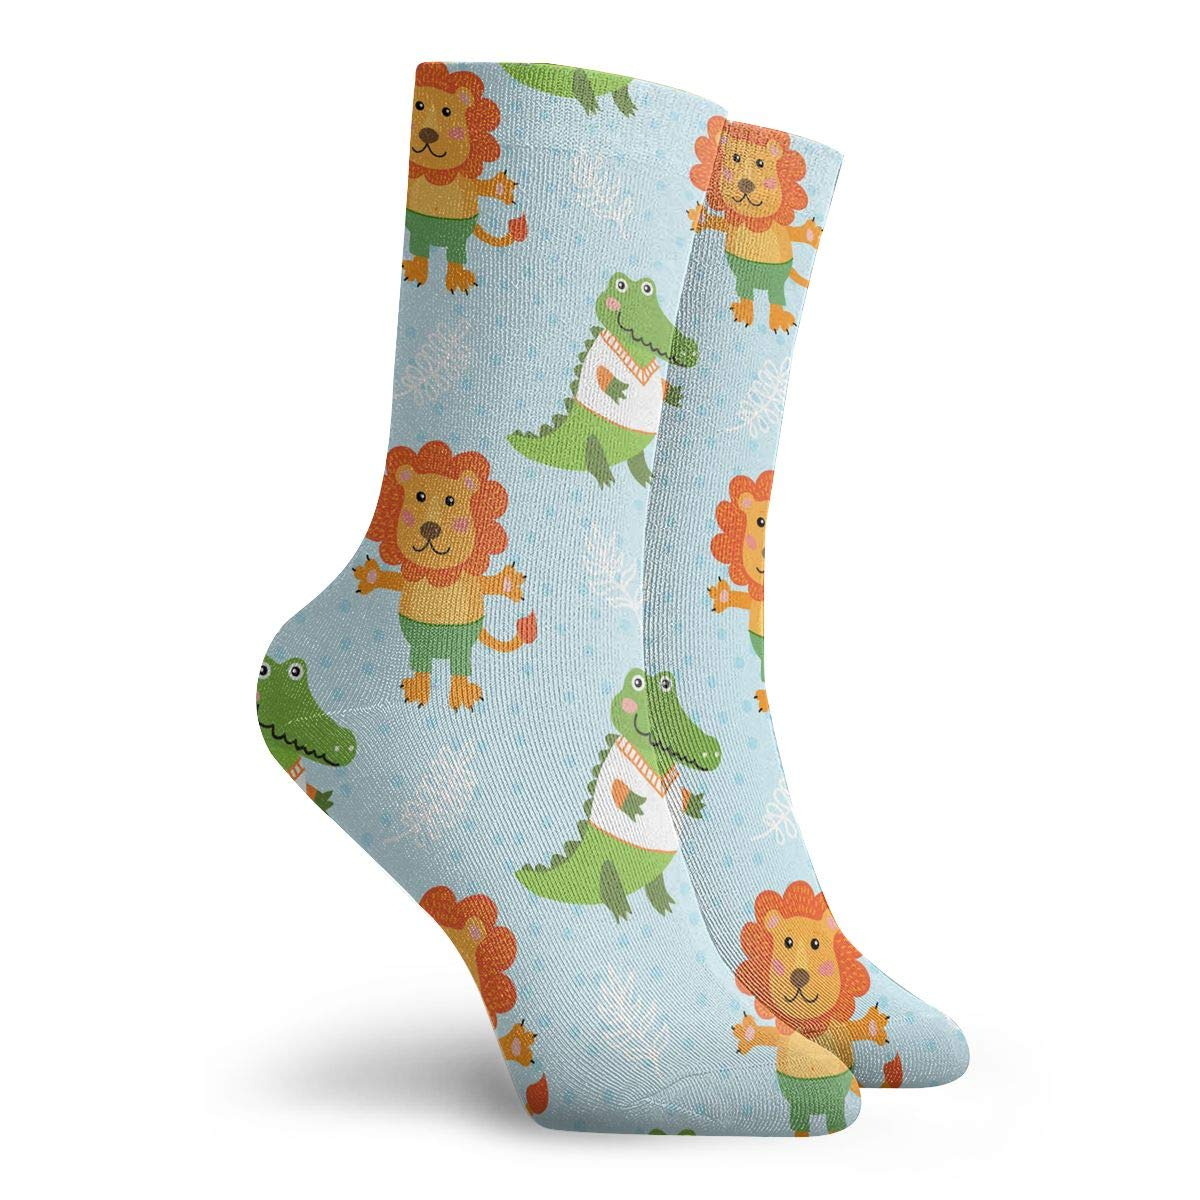 Cute Cartoon Crocodile And Lion Fashion Dress Socks Short Socks Leisure Travel 11.8 Inch